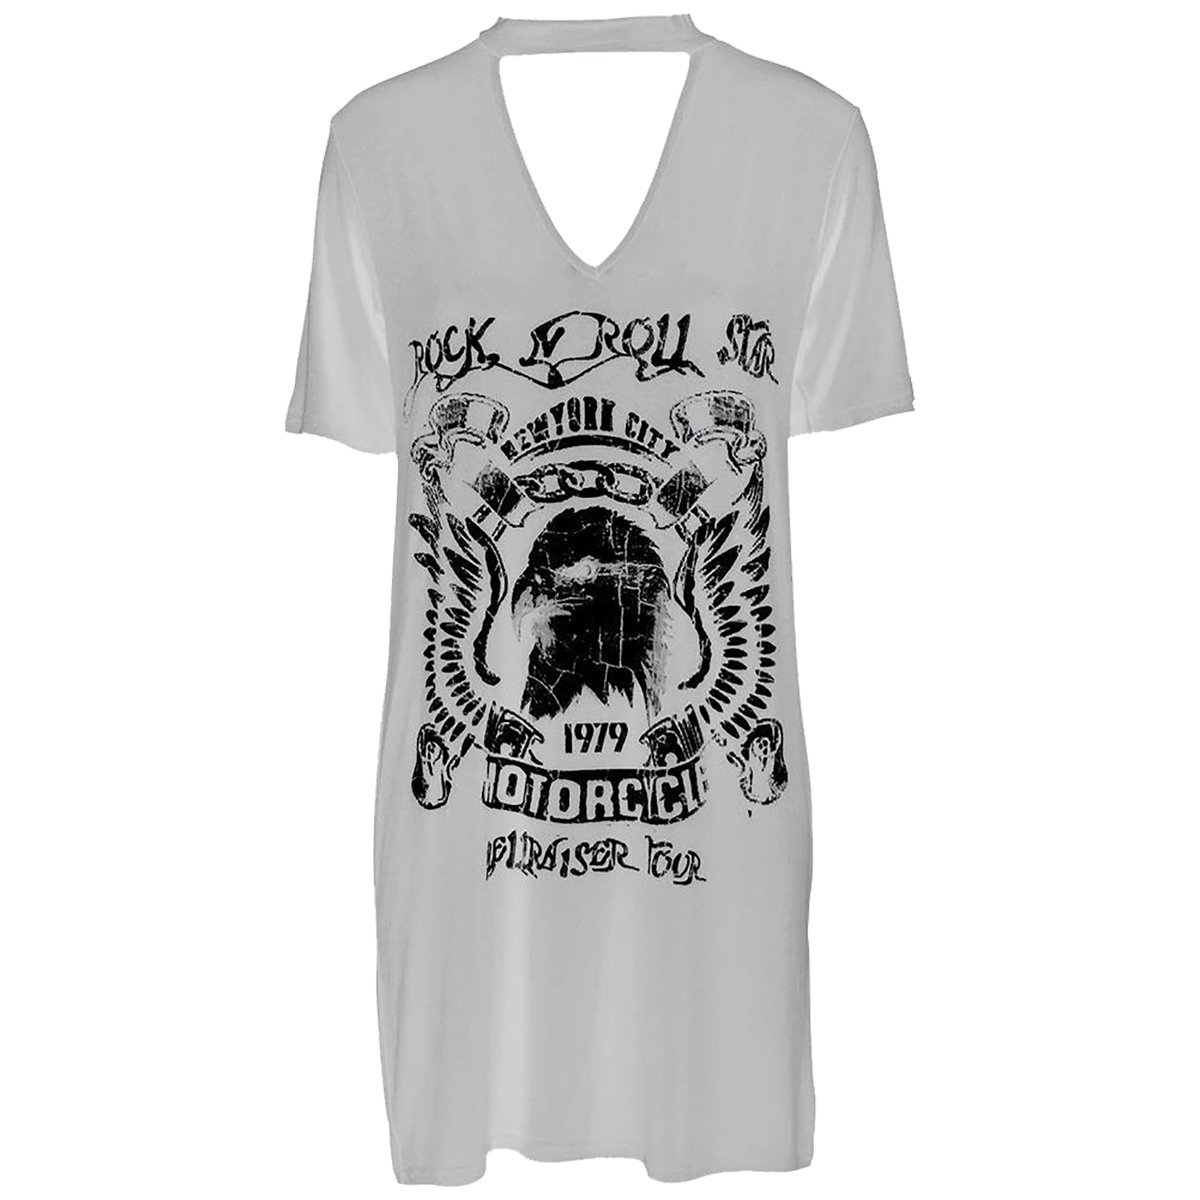 Fashion Essentials-Ladies Rock N Roll Star Motorcycle Printed Choker Neck T-Shirt  Dress at Amazon Women's Clothing store: